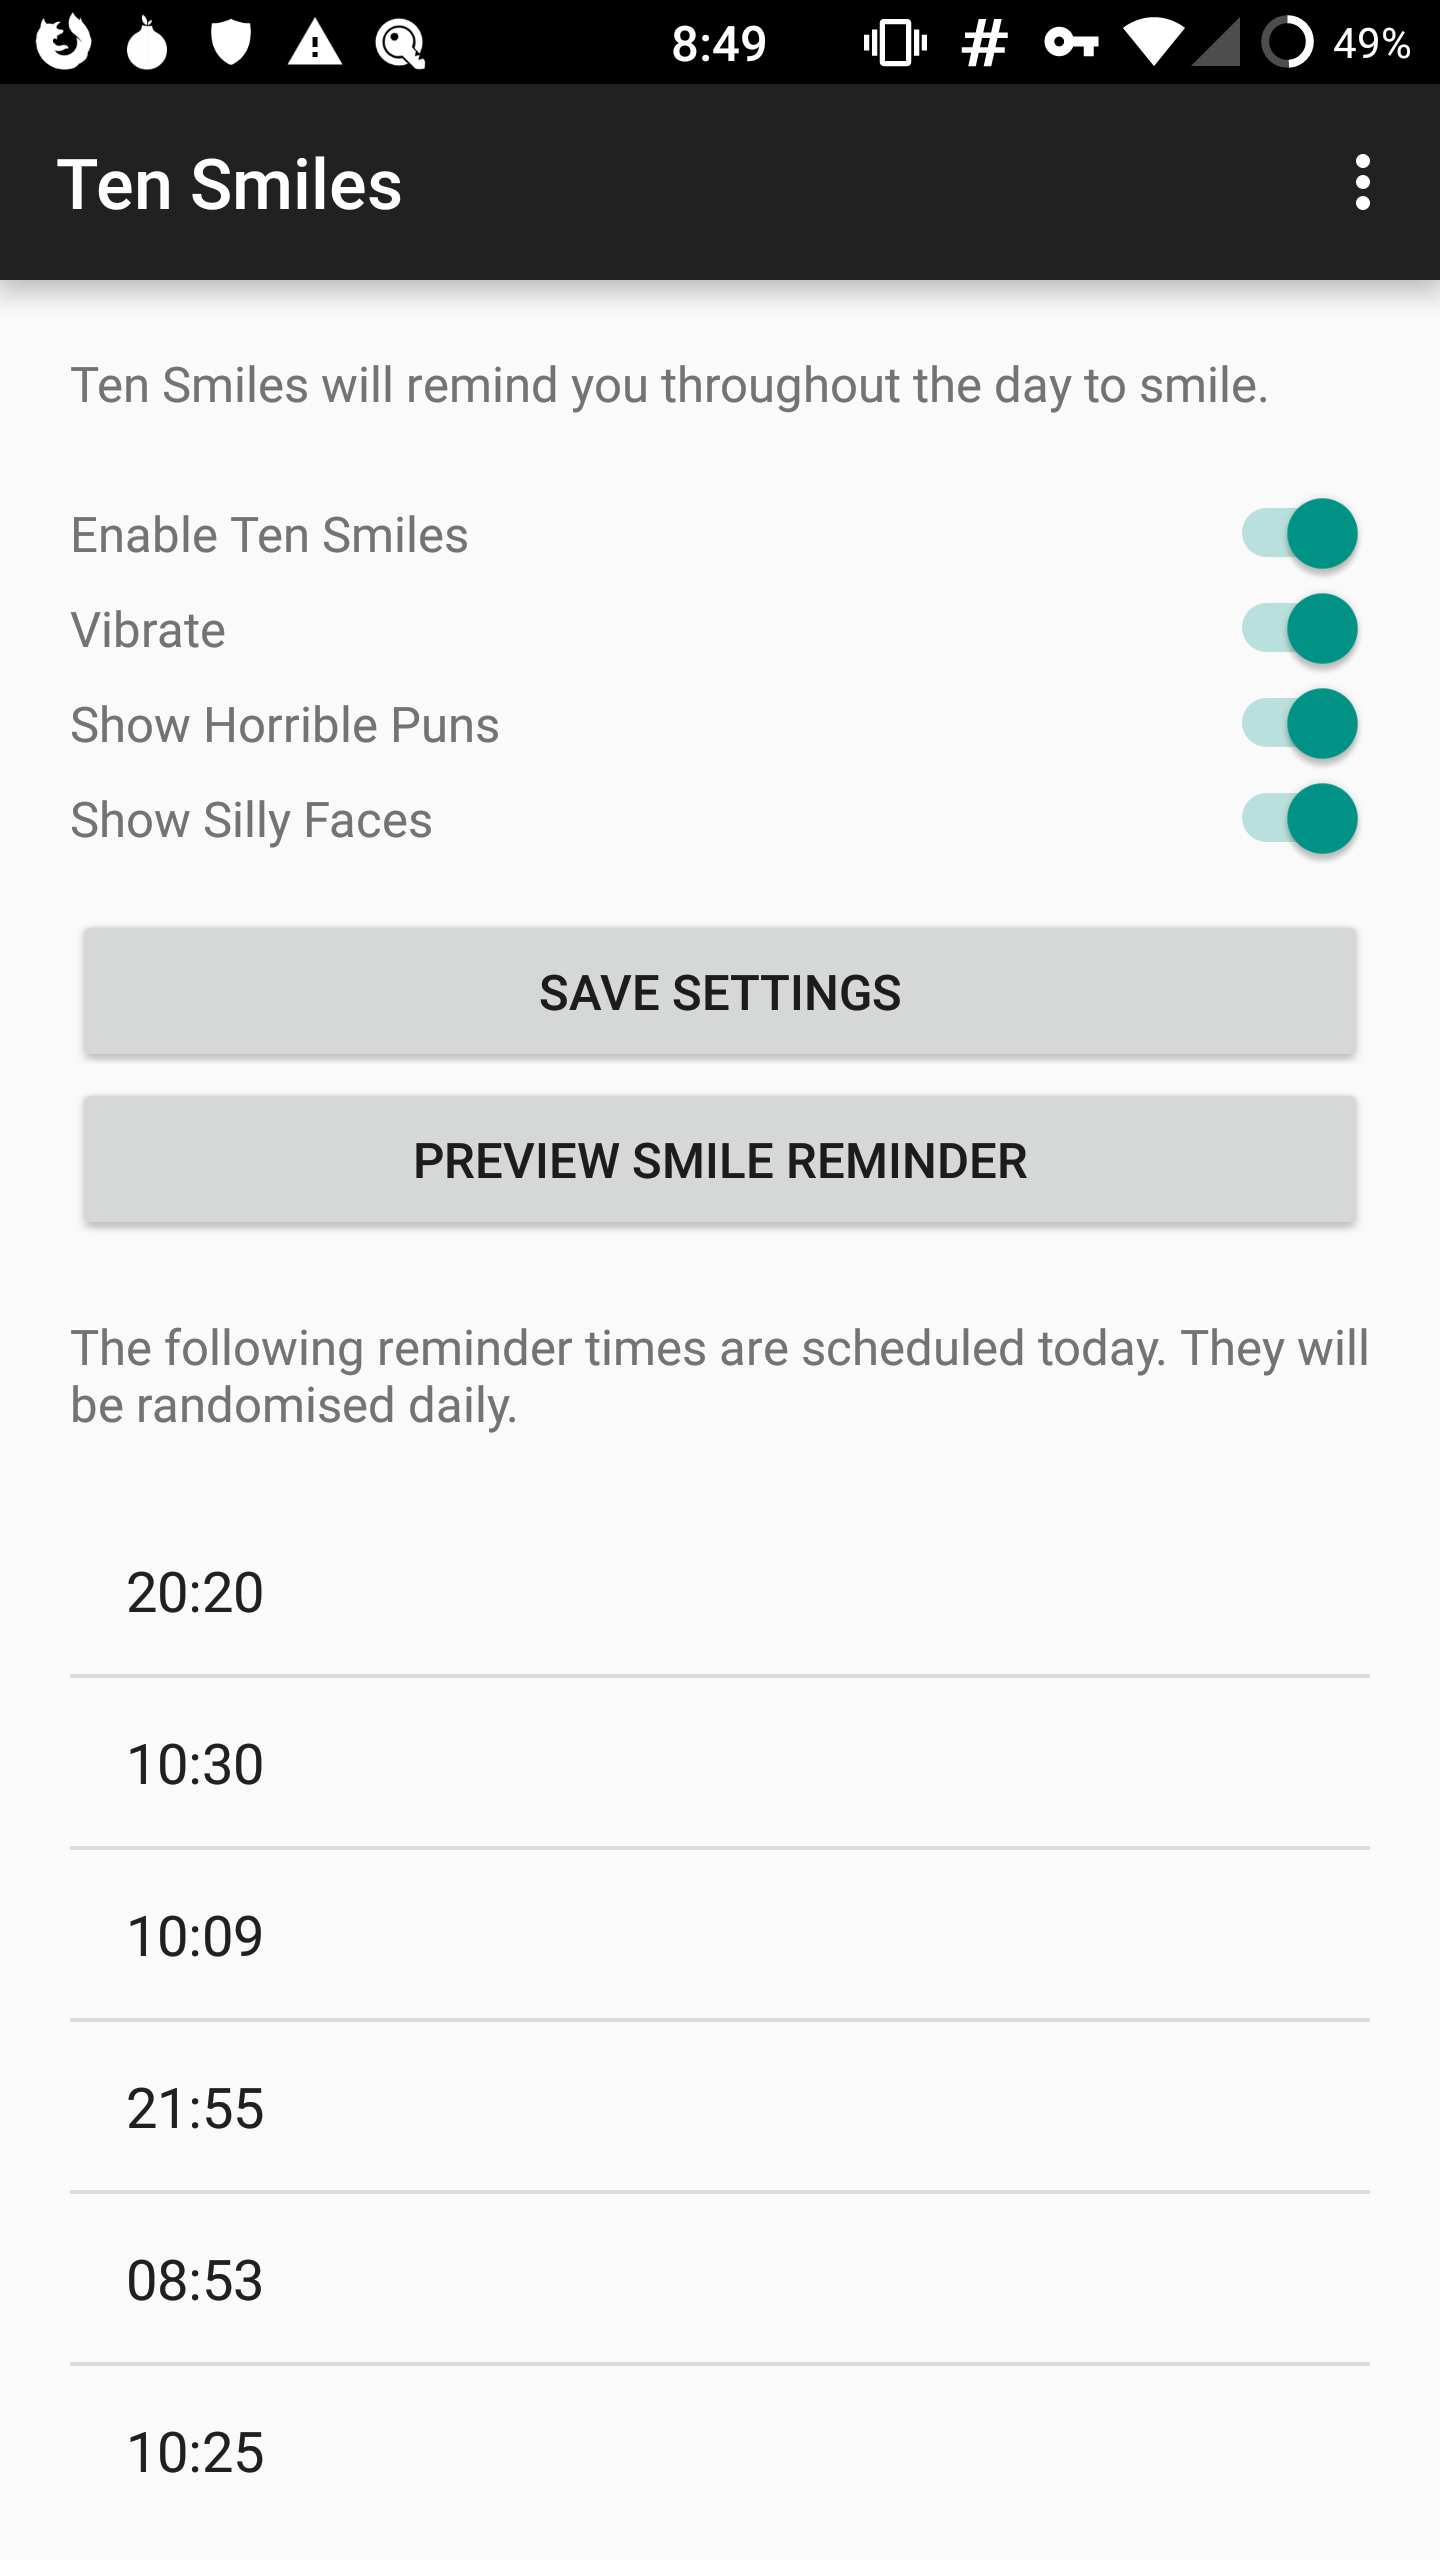 A small number of settings visible in the Ten Smiles app